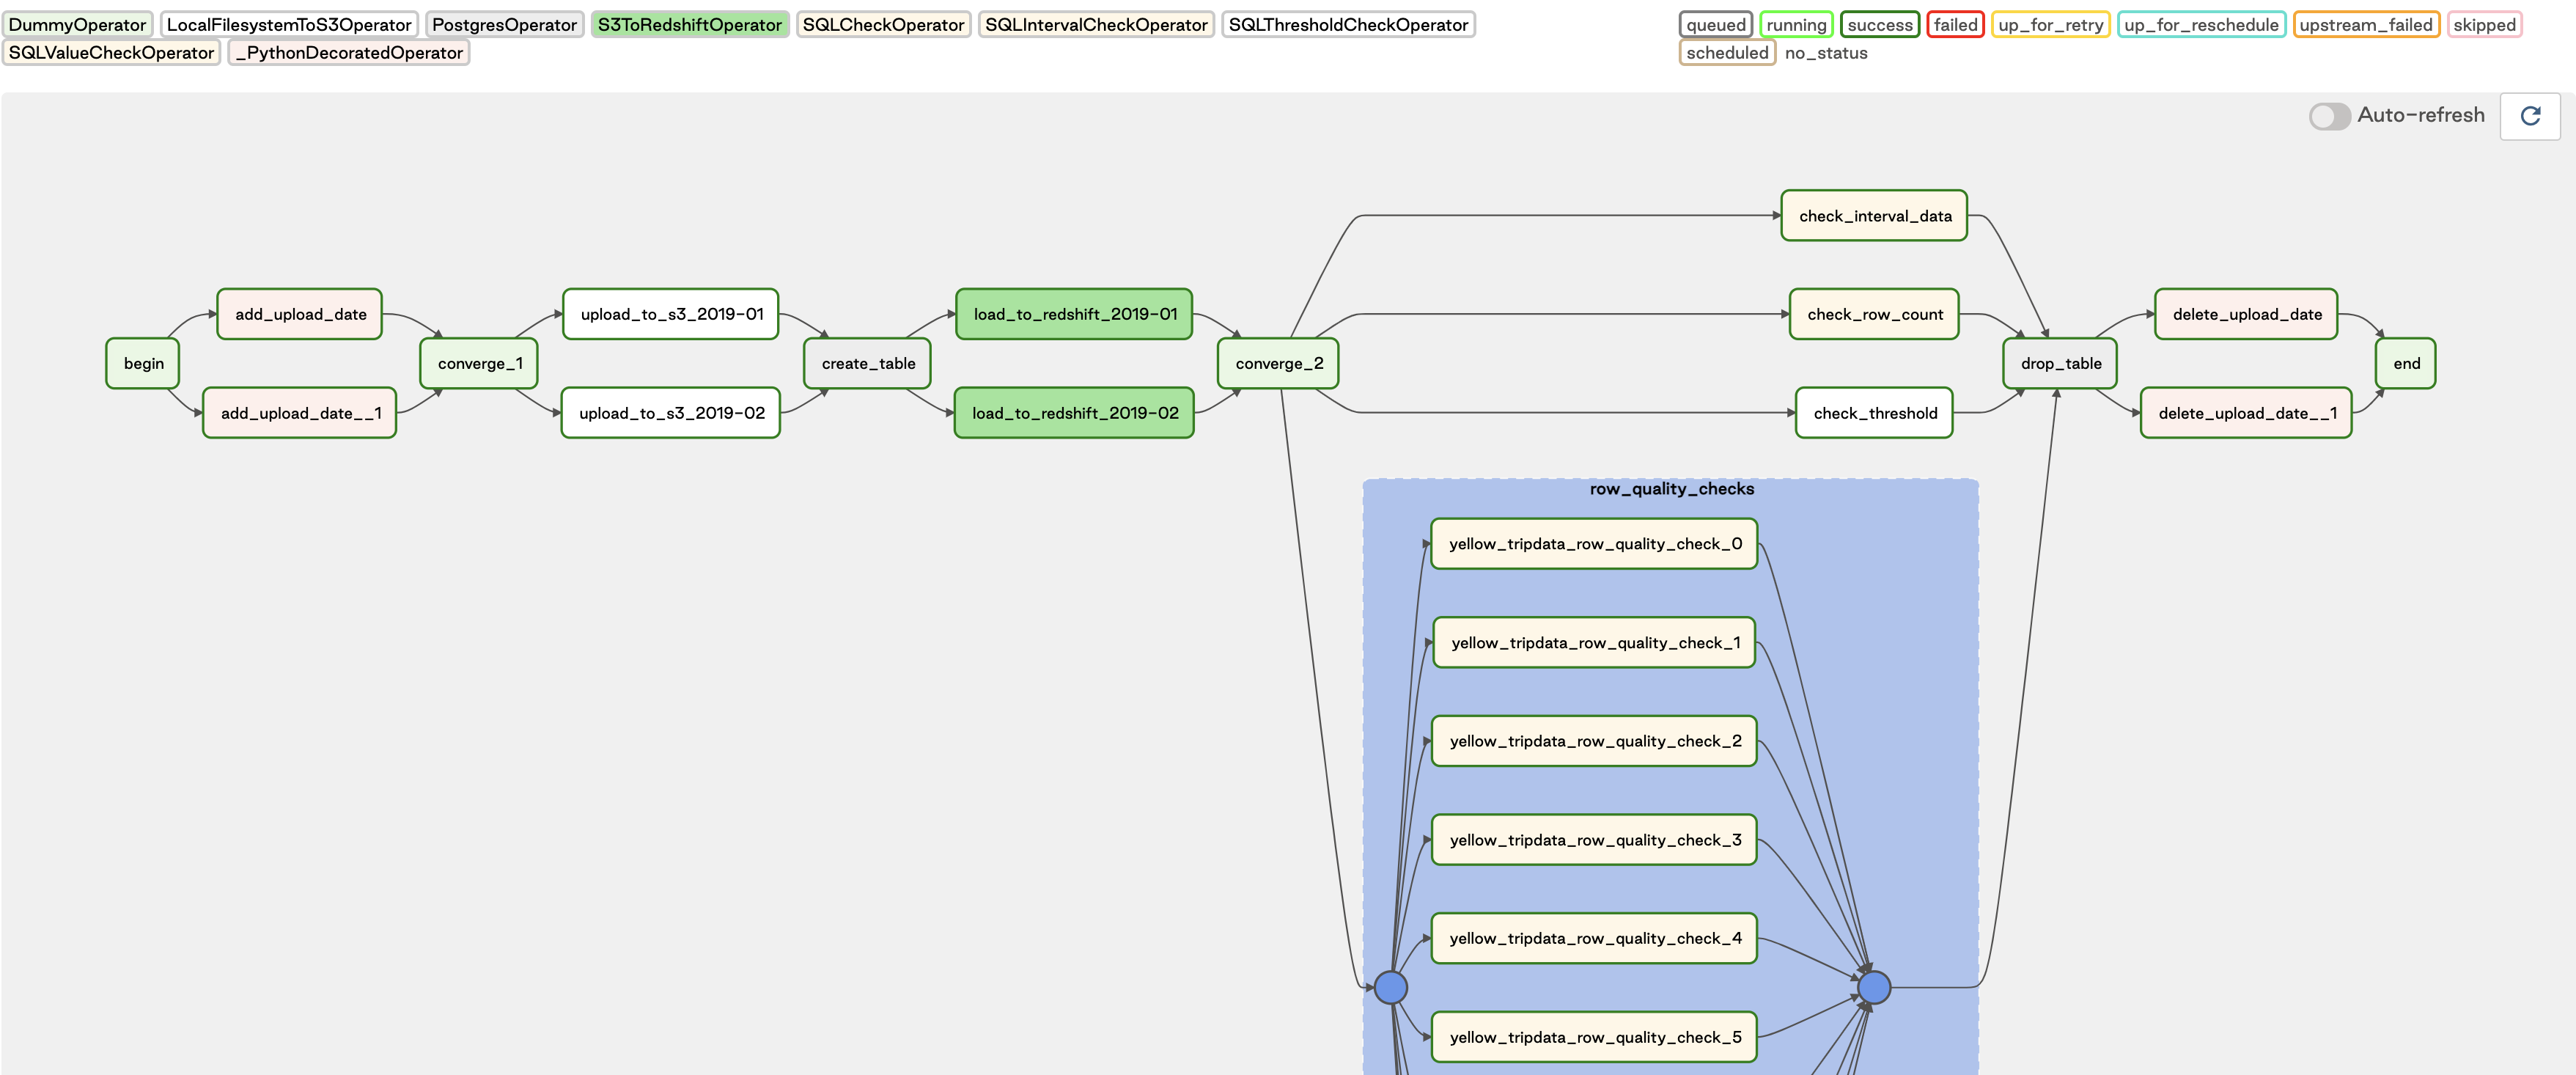 An example DAG showing data quality checks as part of a pipeline.